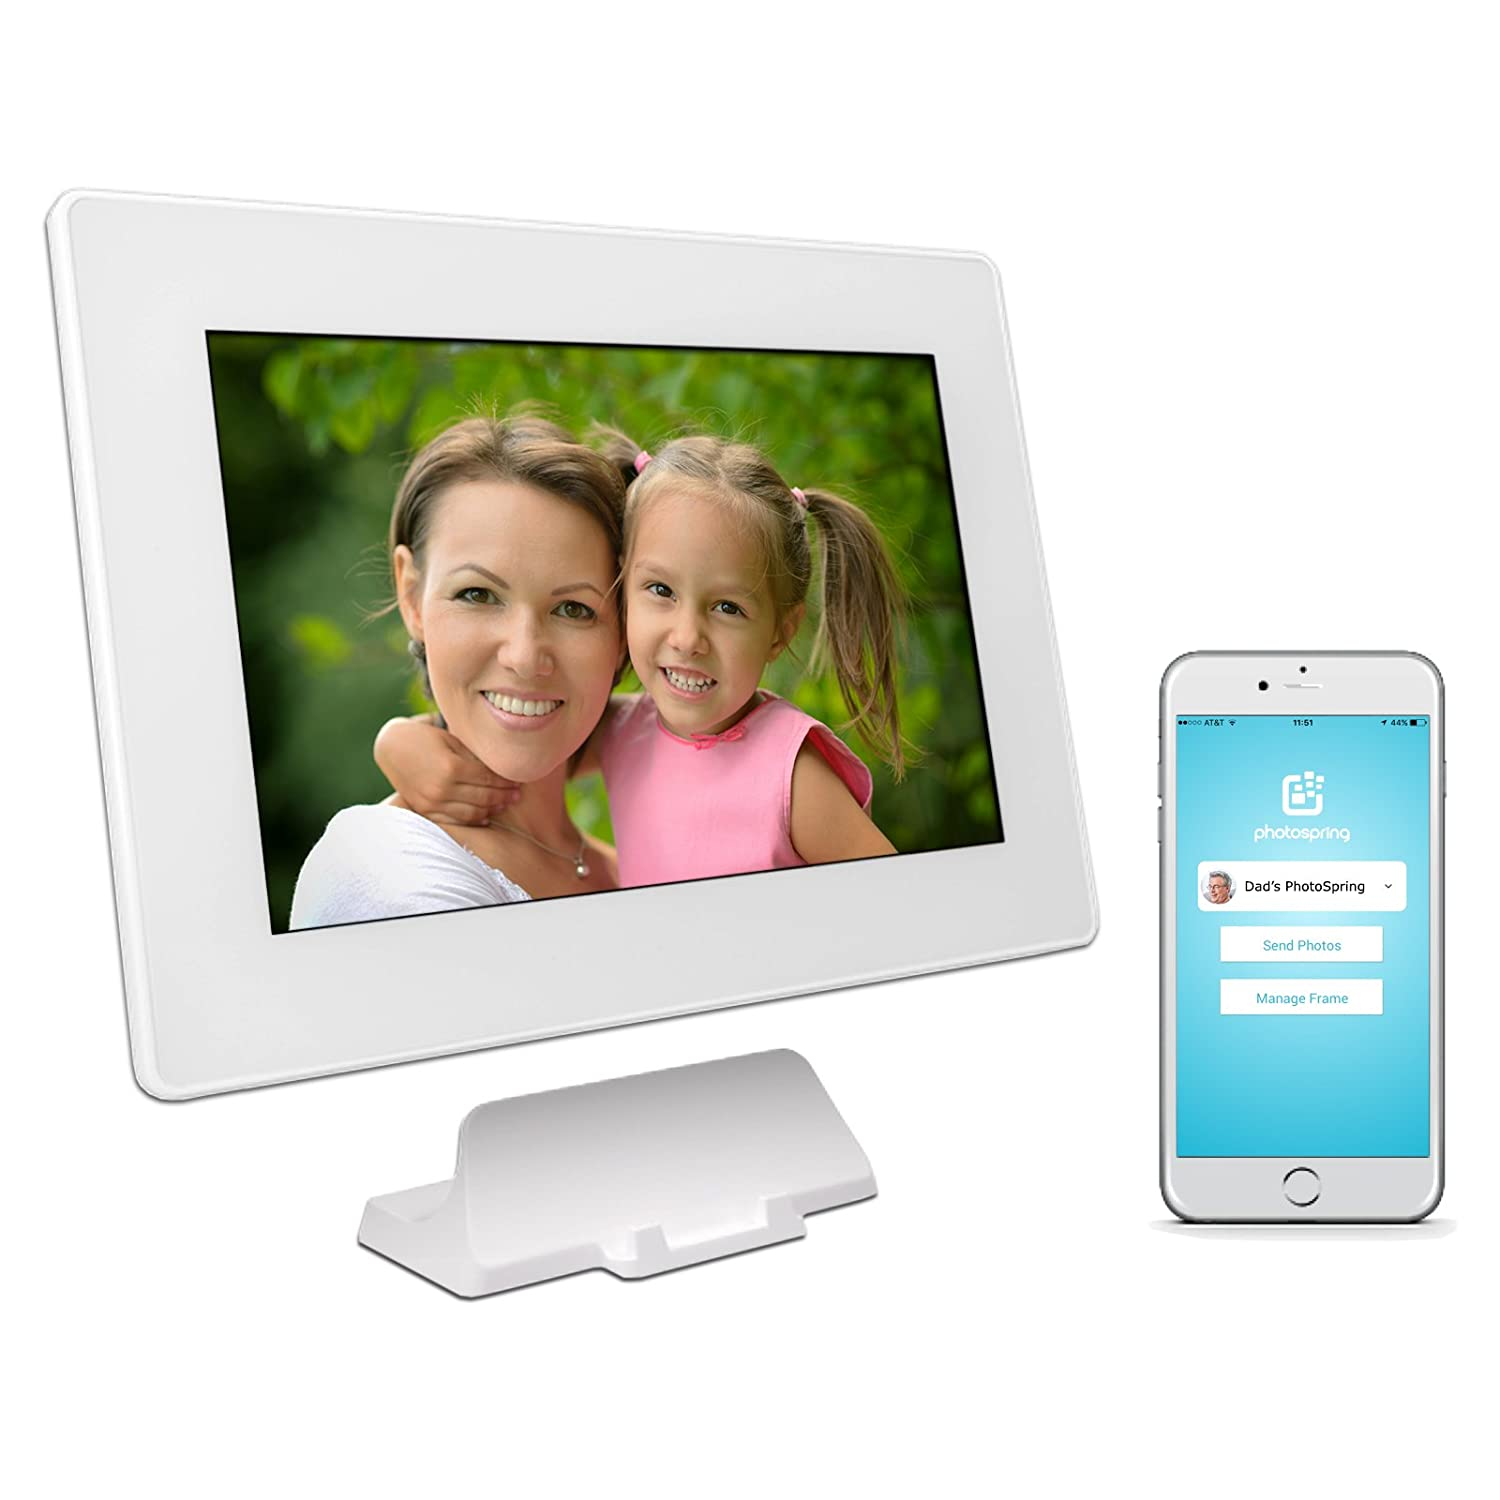 3 great digital photo frames perfect for any home | Komando.com